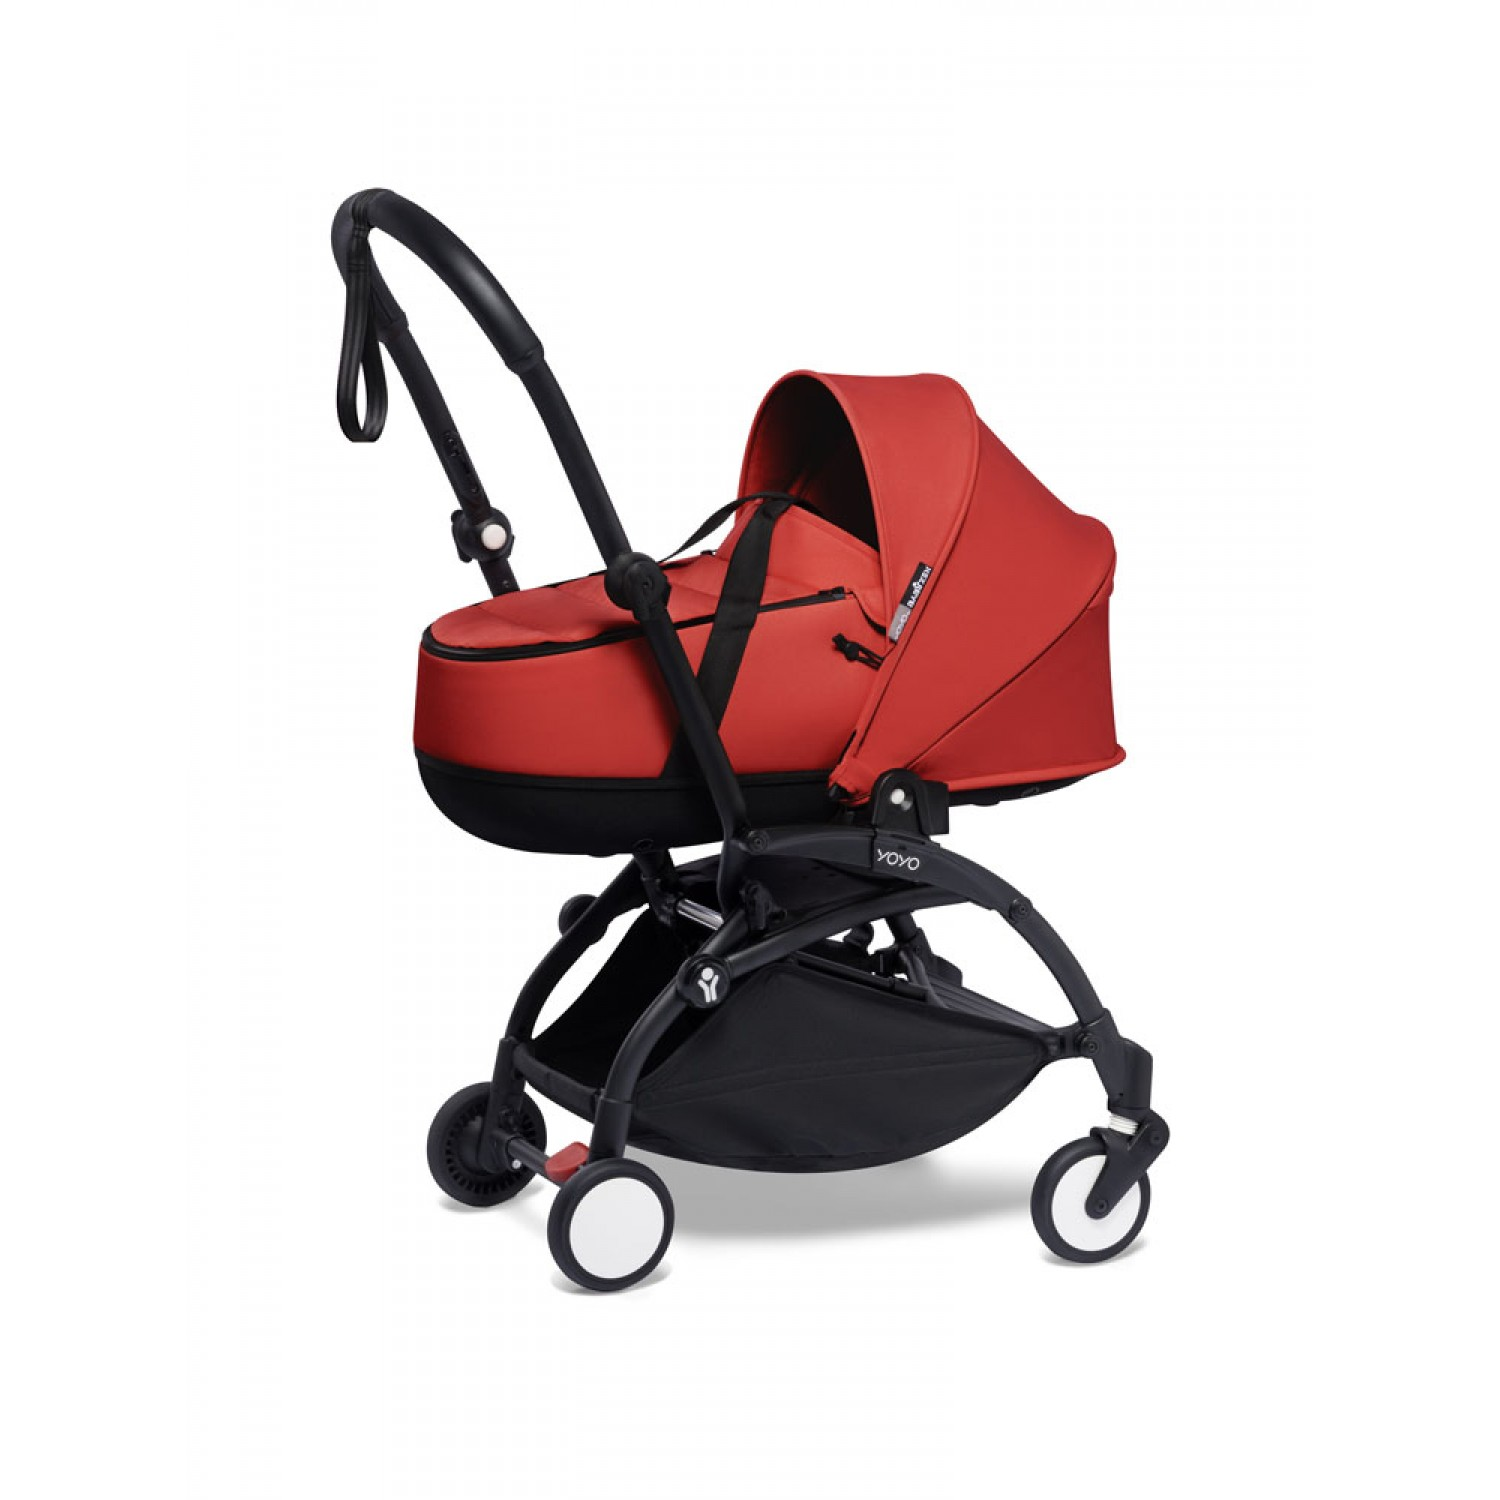 BABYZEN stroller YOYO2 bassinet  Black Frame | Red